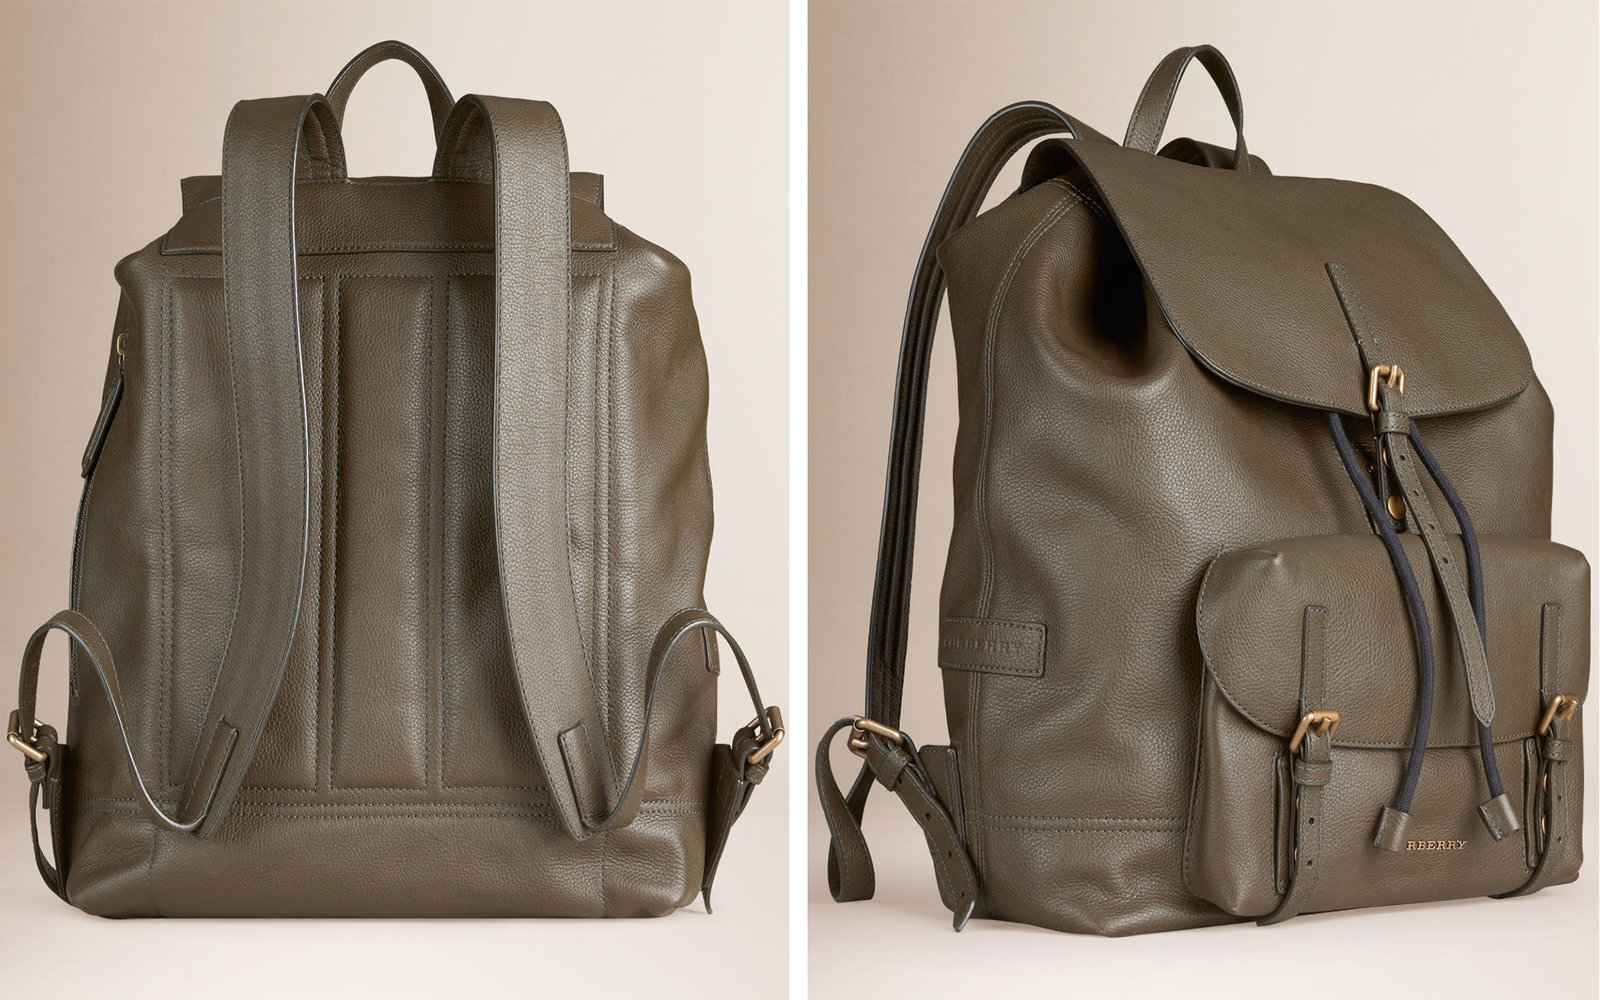 Burberry Leather Backpacks